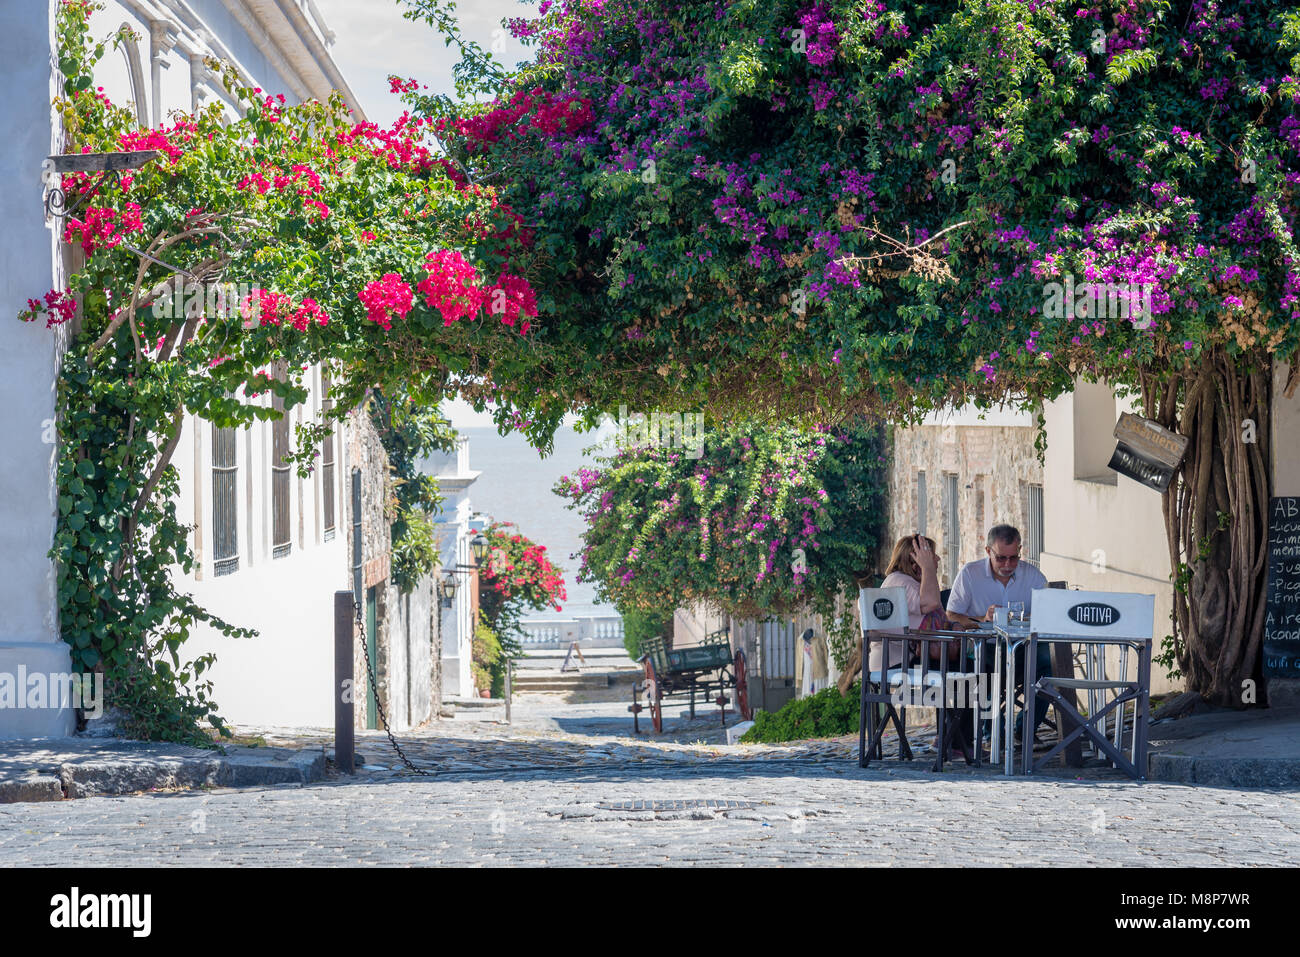 A couple eating outside in Colonia, Uruguay - Stock Image